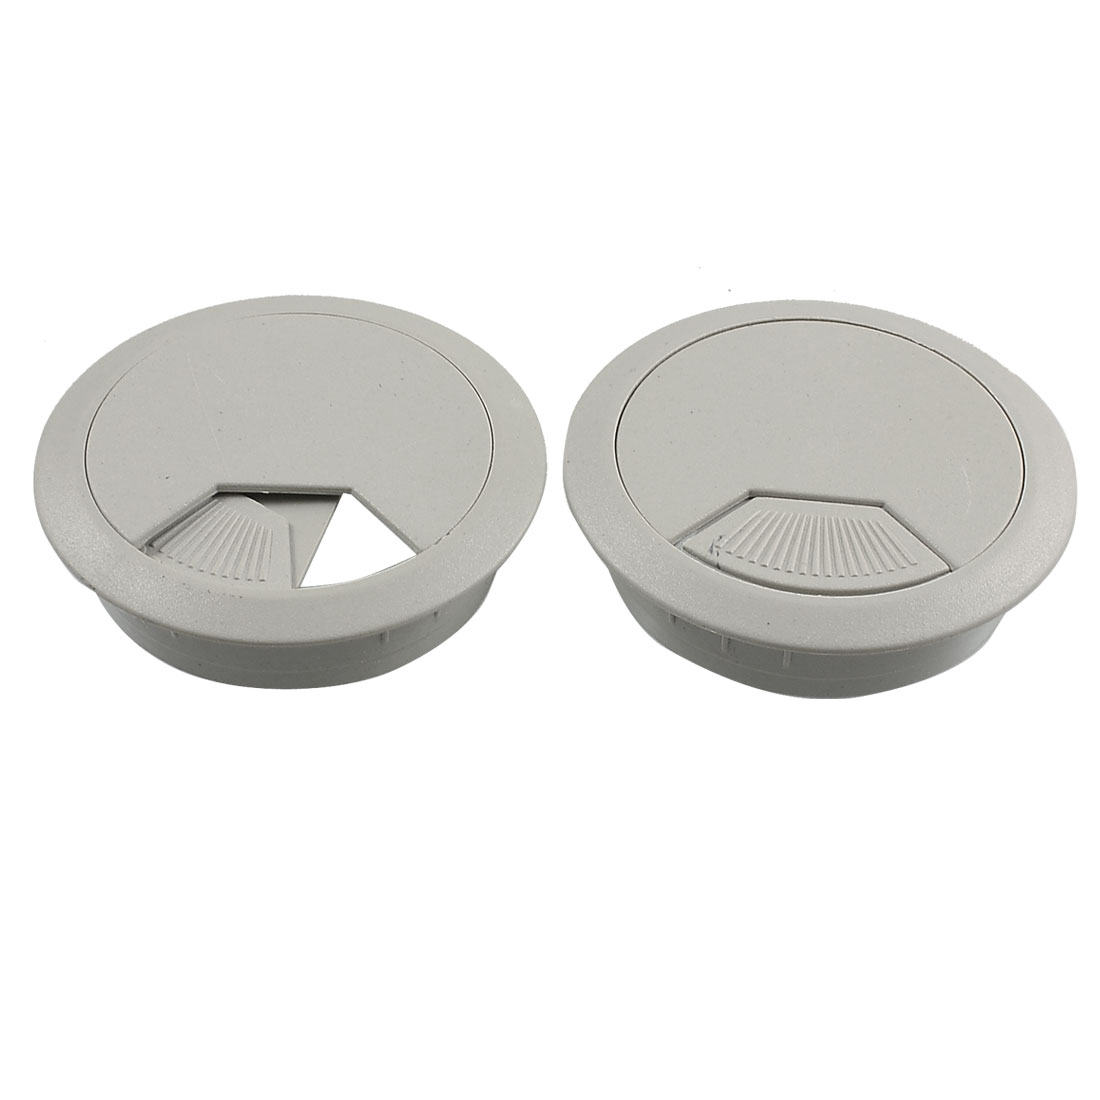 53mm Gray Plastic Desk Computer Cable Cover Grommet Organizer Shell 2 Pcs